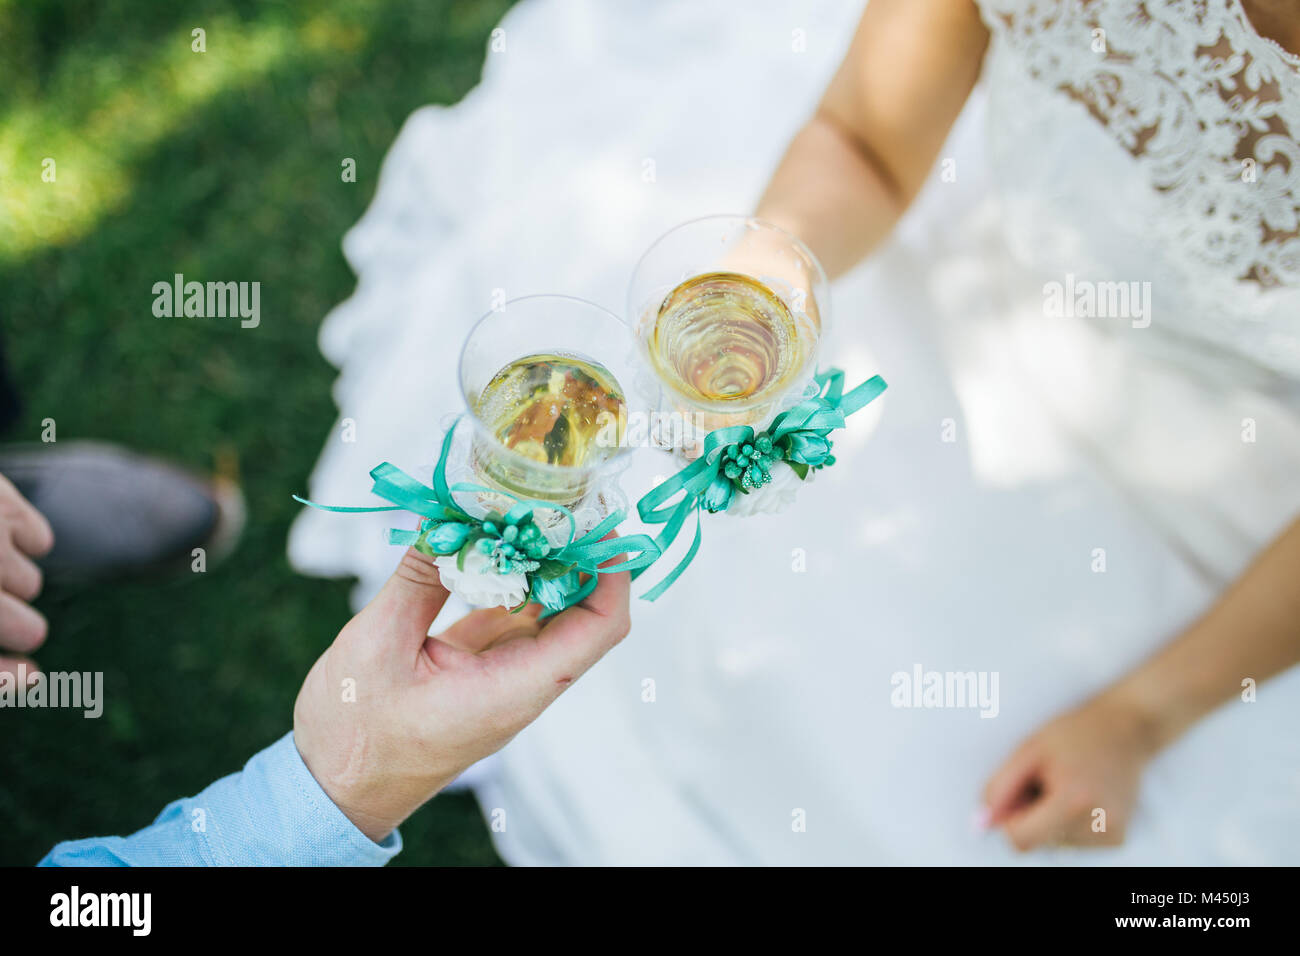 Newlyweds clink glasses with champagne on the grass - Stock Image